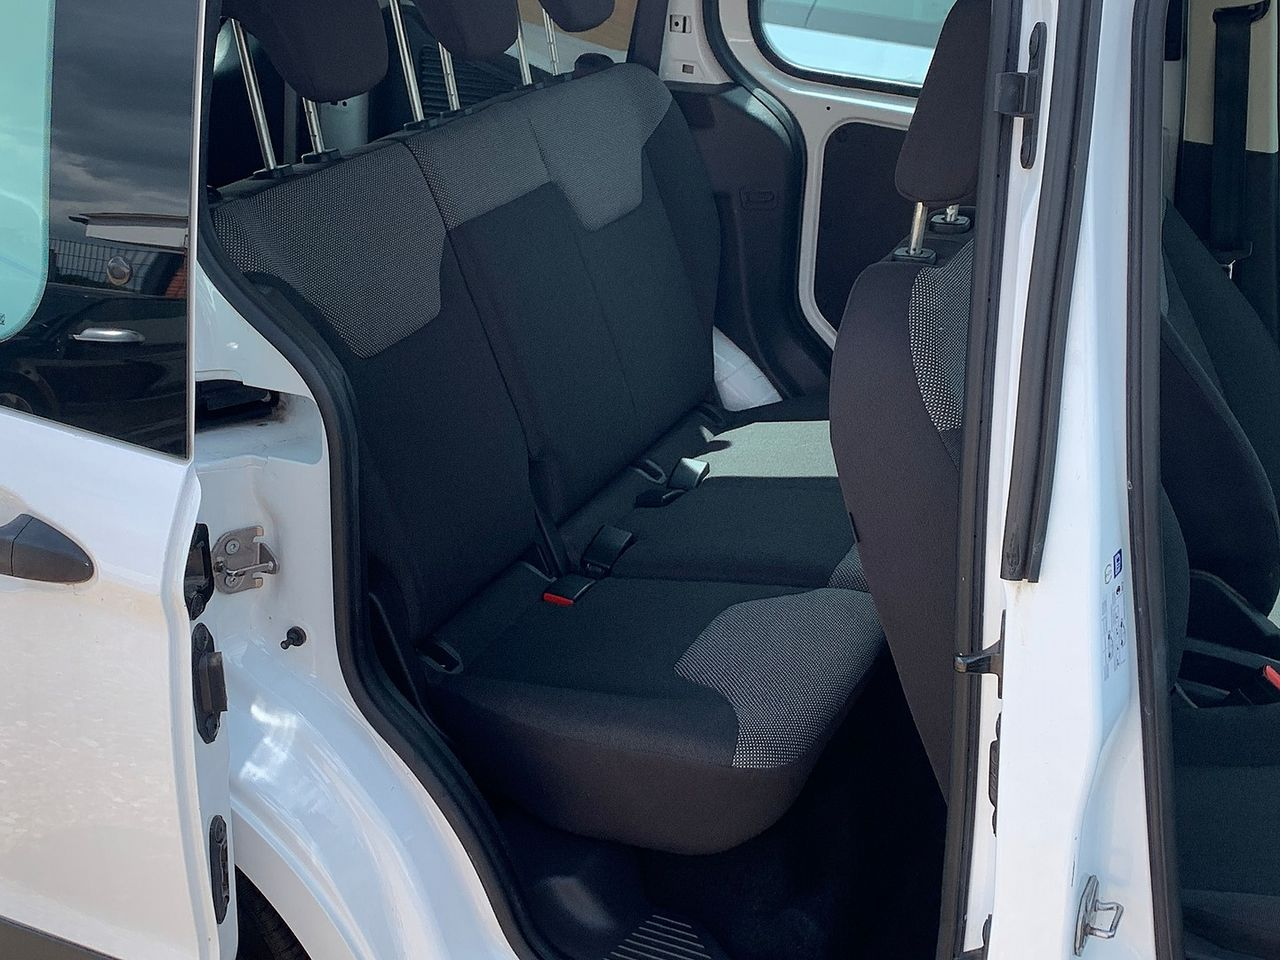 2017 FORD TRANSIT COURIER KOMBI TDCI ECO - Picture 6 of 6